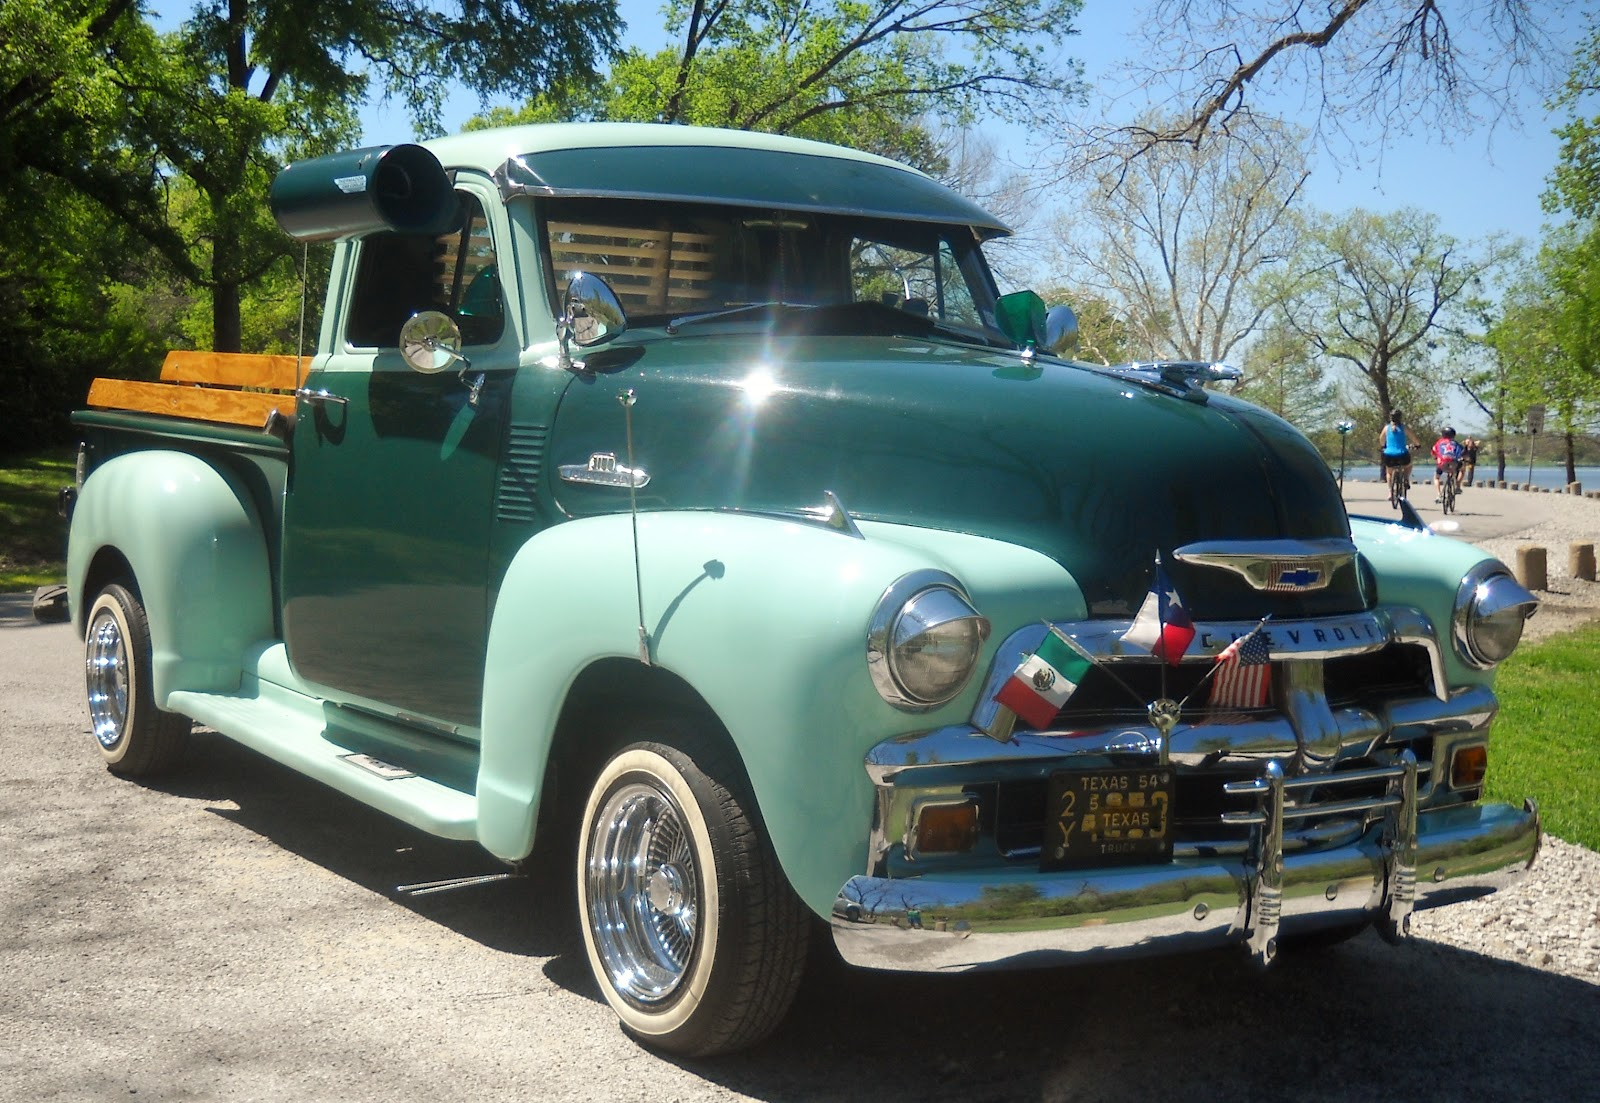 Truck 1940 chevy truck for sale : White Rock Lake, Dallas, Texas: Restored 1940's Chevy Truck at ...